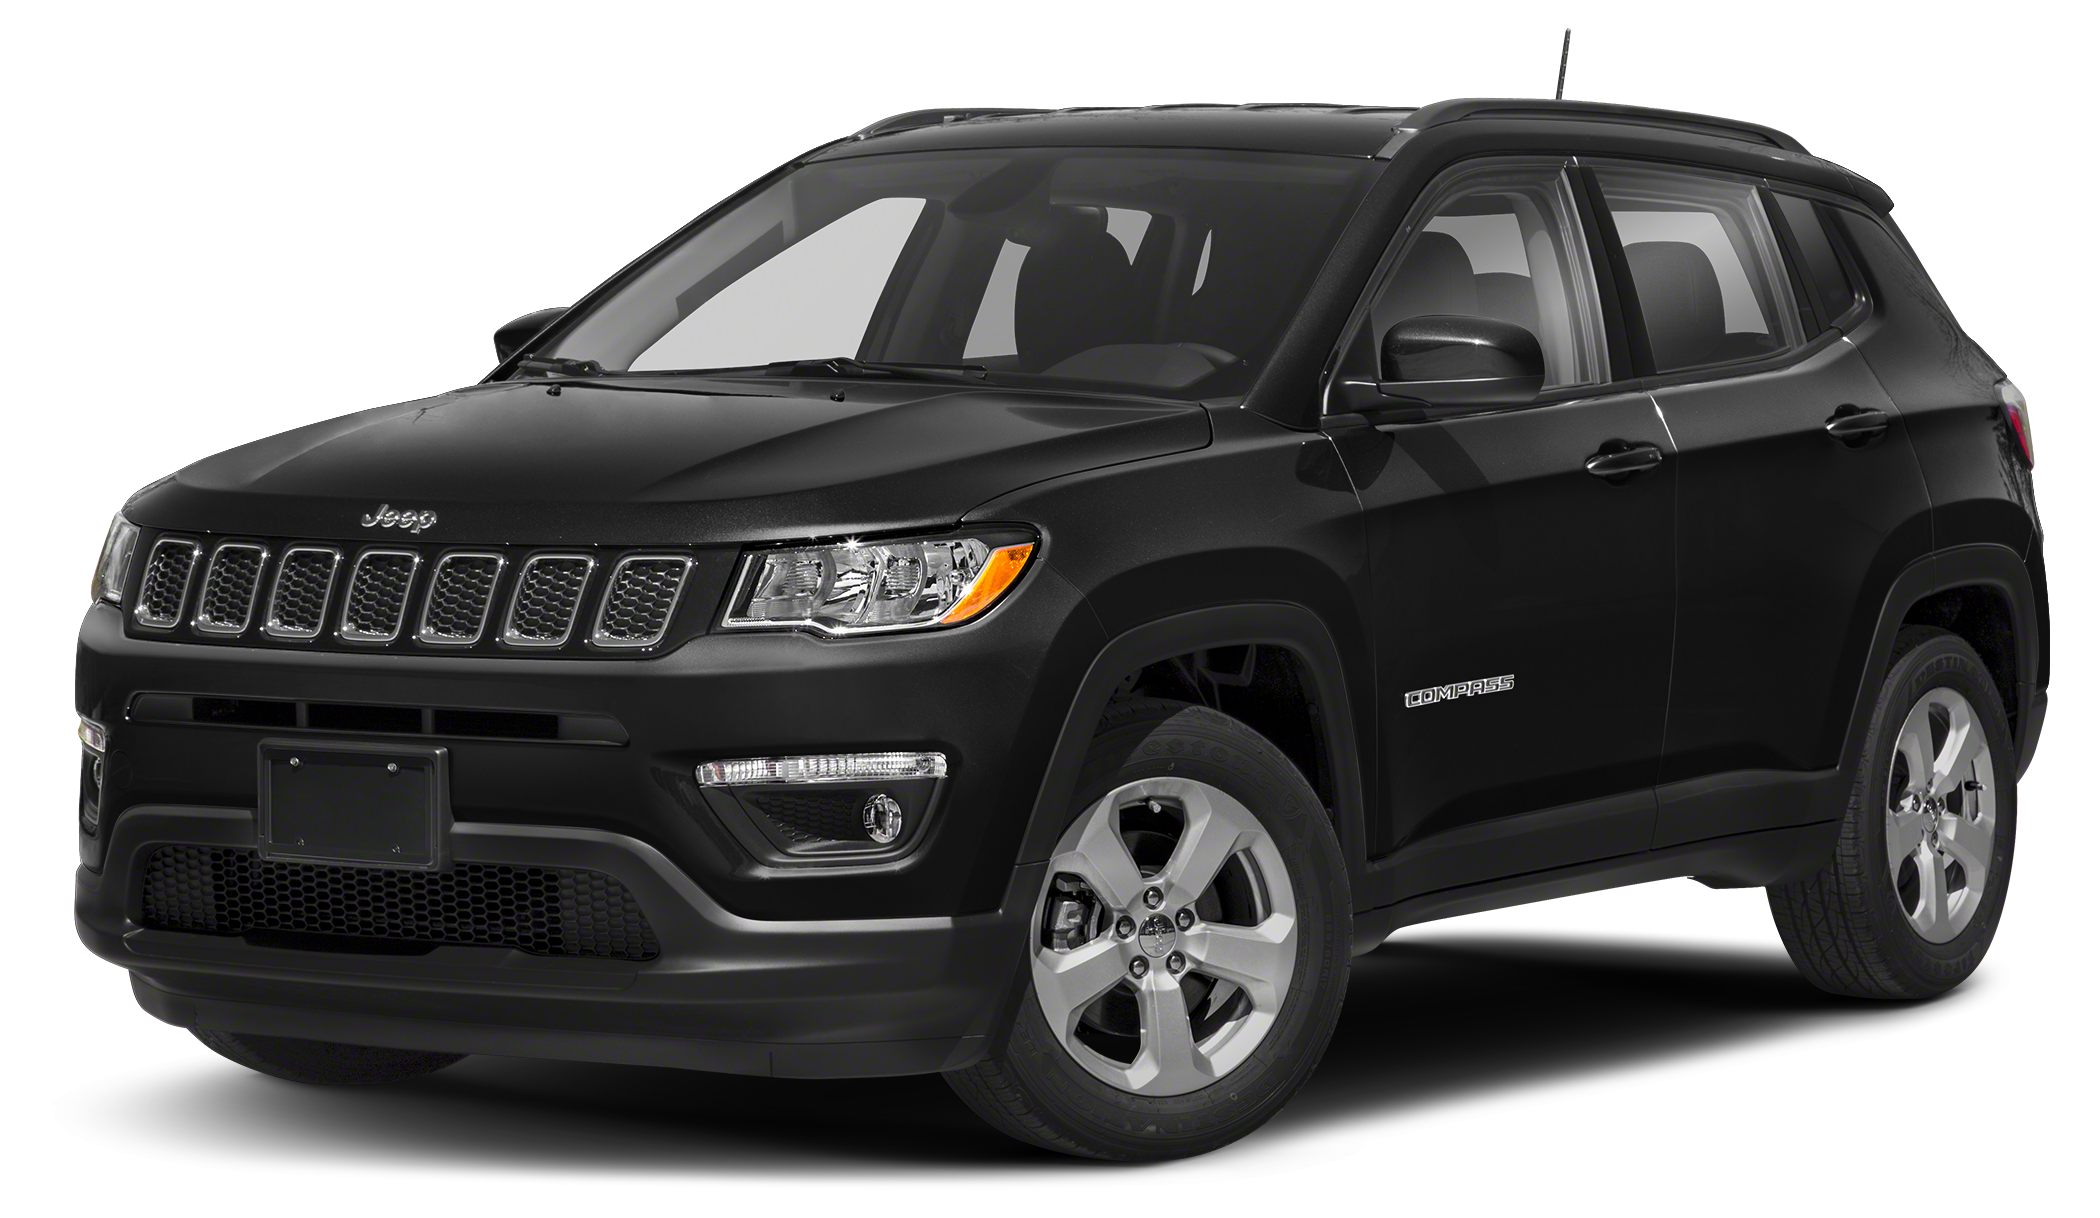 2018 Jeep Compass Sport New Price Recent Arrival Diamond Black 2018 Jeep Compass Sport FWD 6-Spe